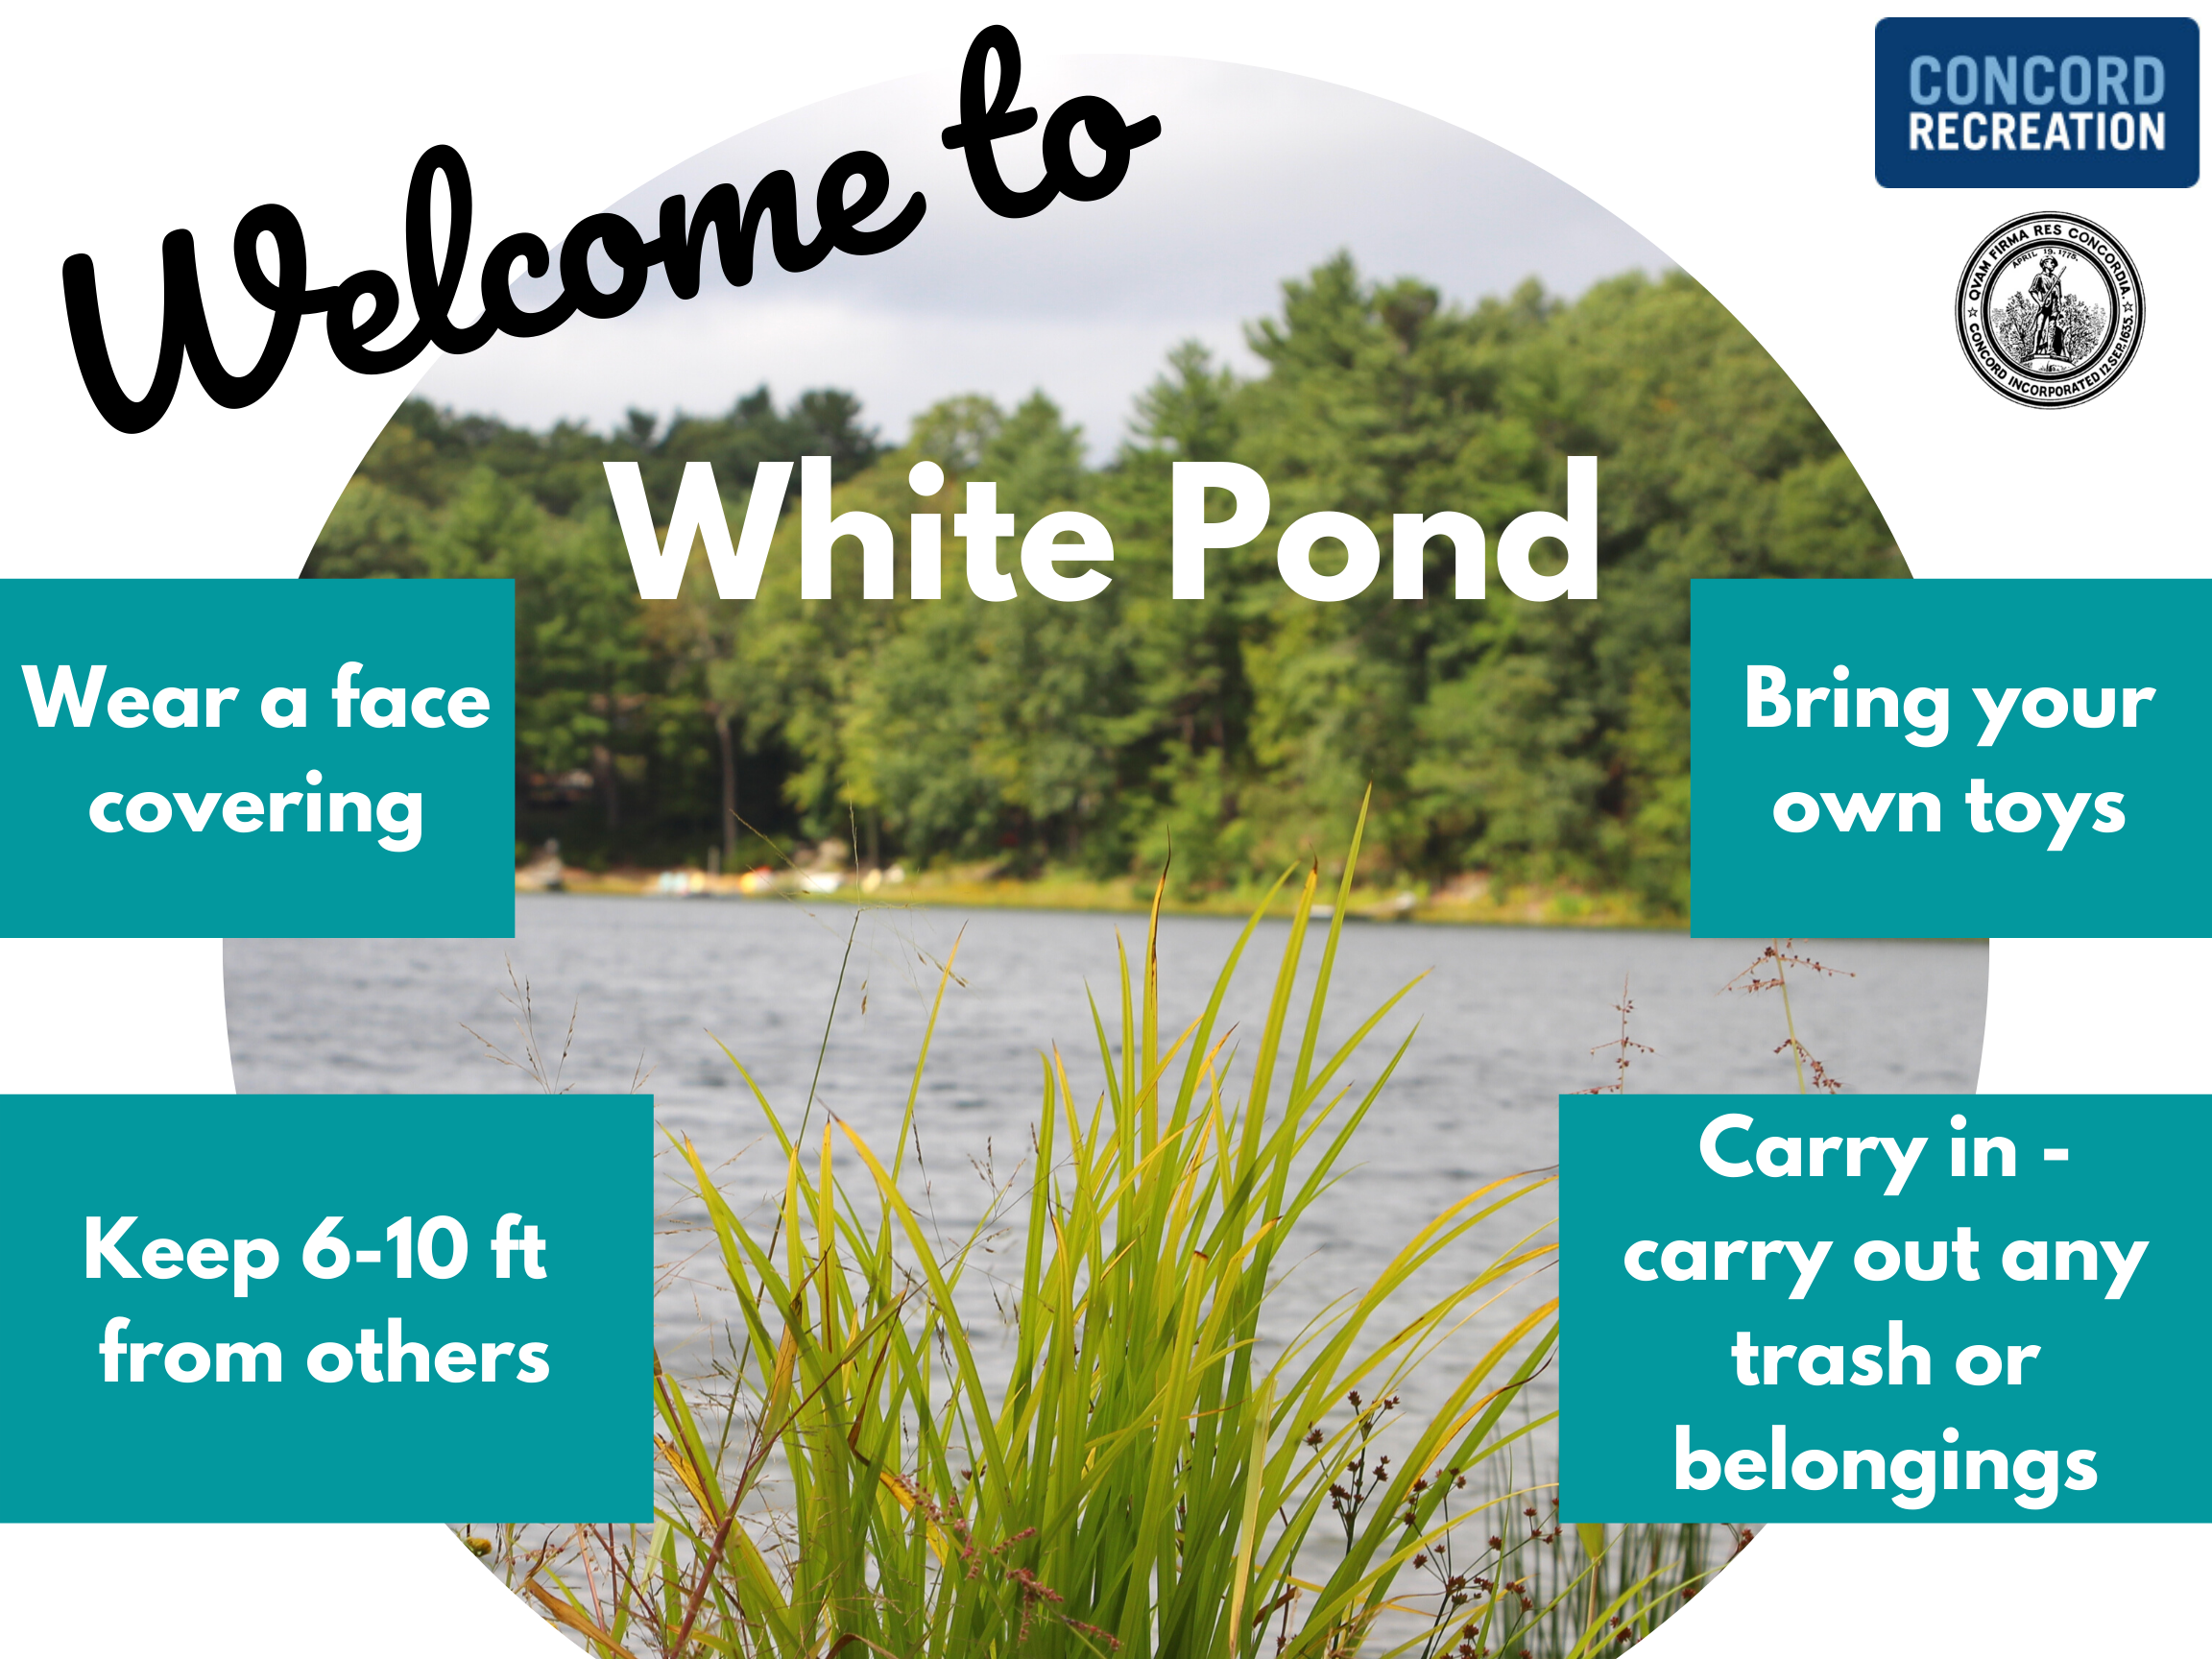 Welcome to White Pond